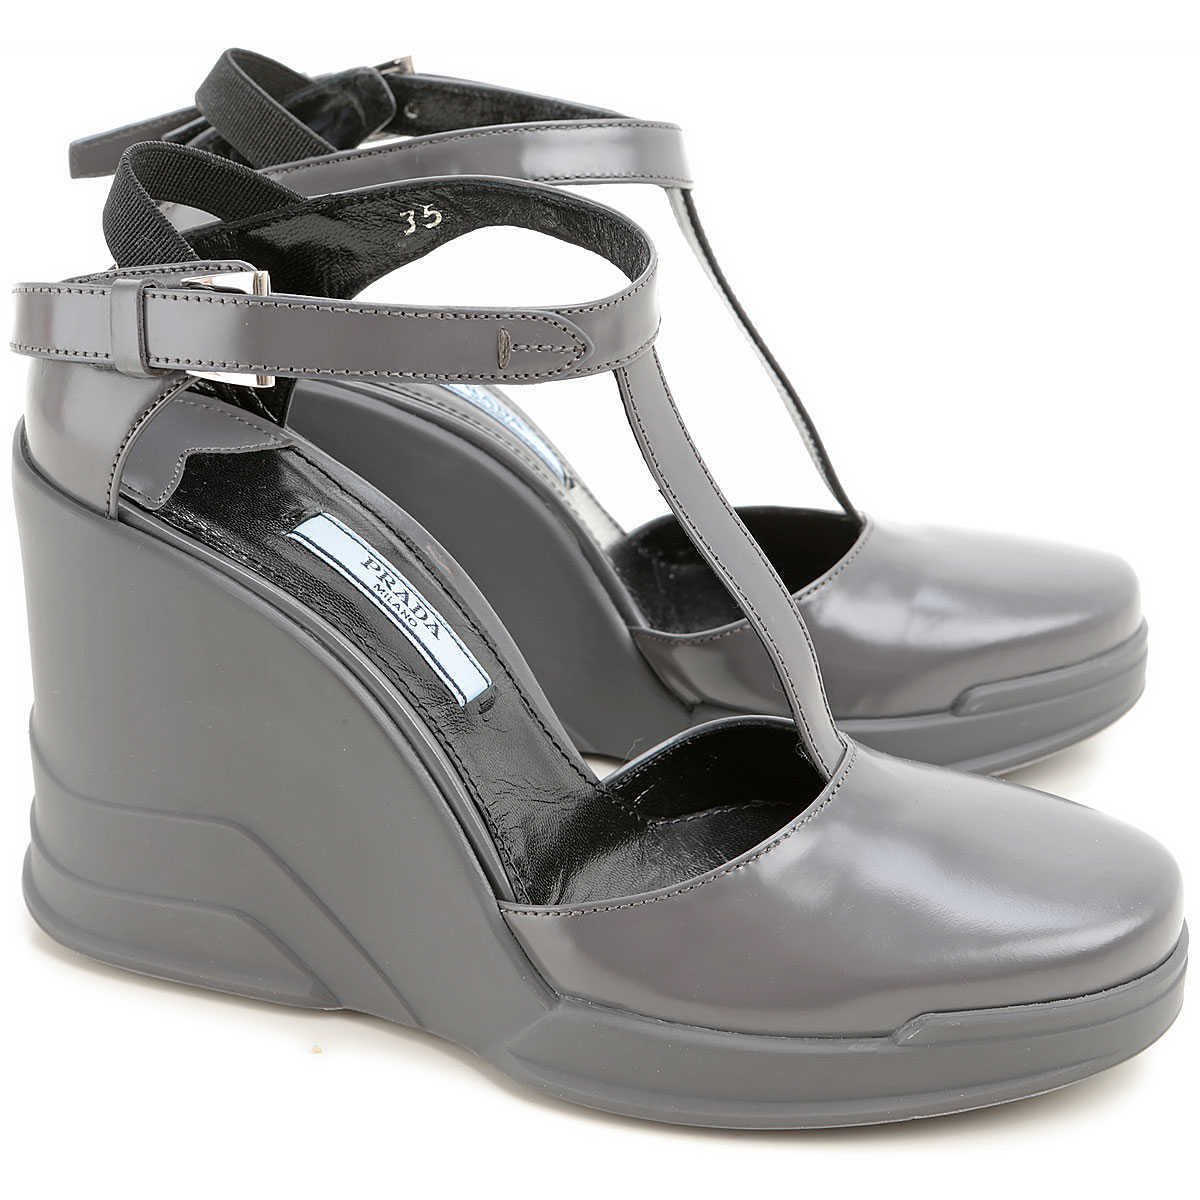 Prada Wedges for Women in Outlet Grey Canada - GOOFASH - Womens HOUSE SHOES